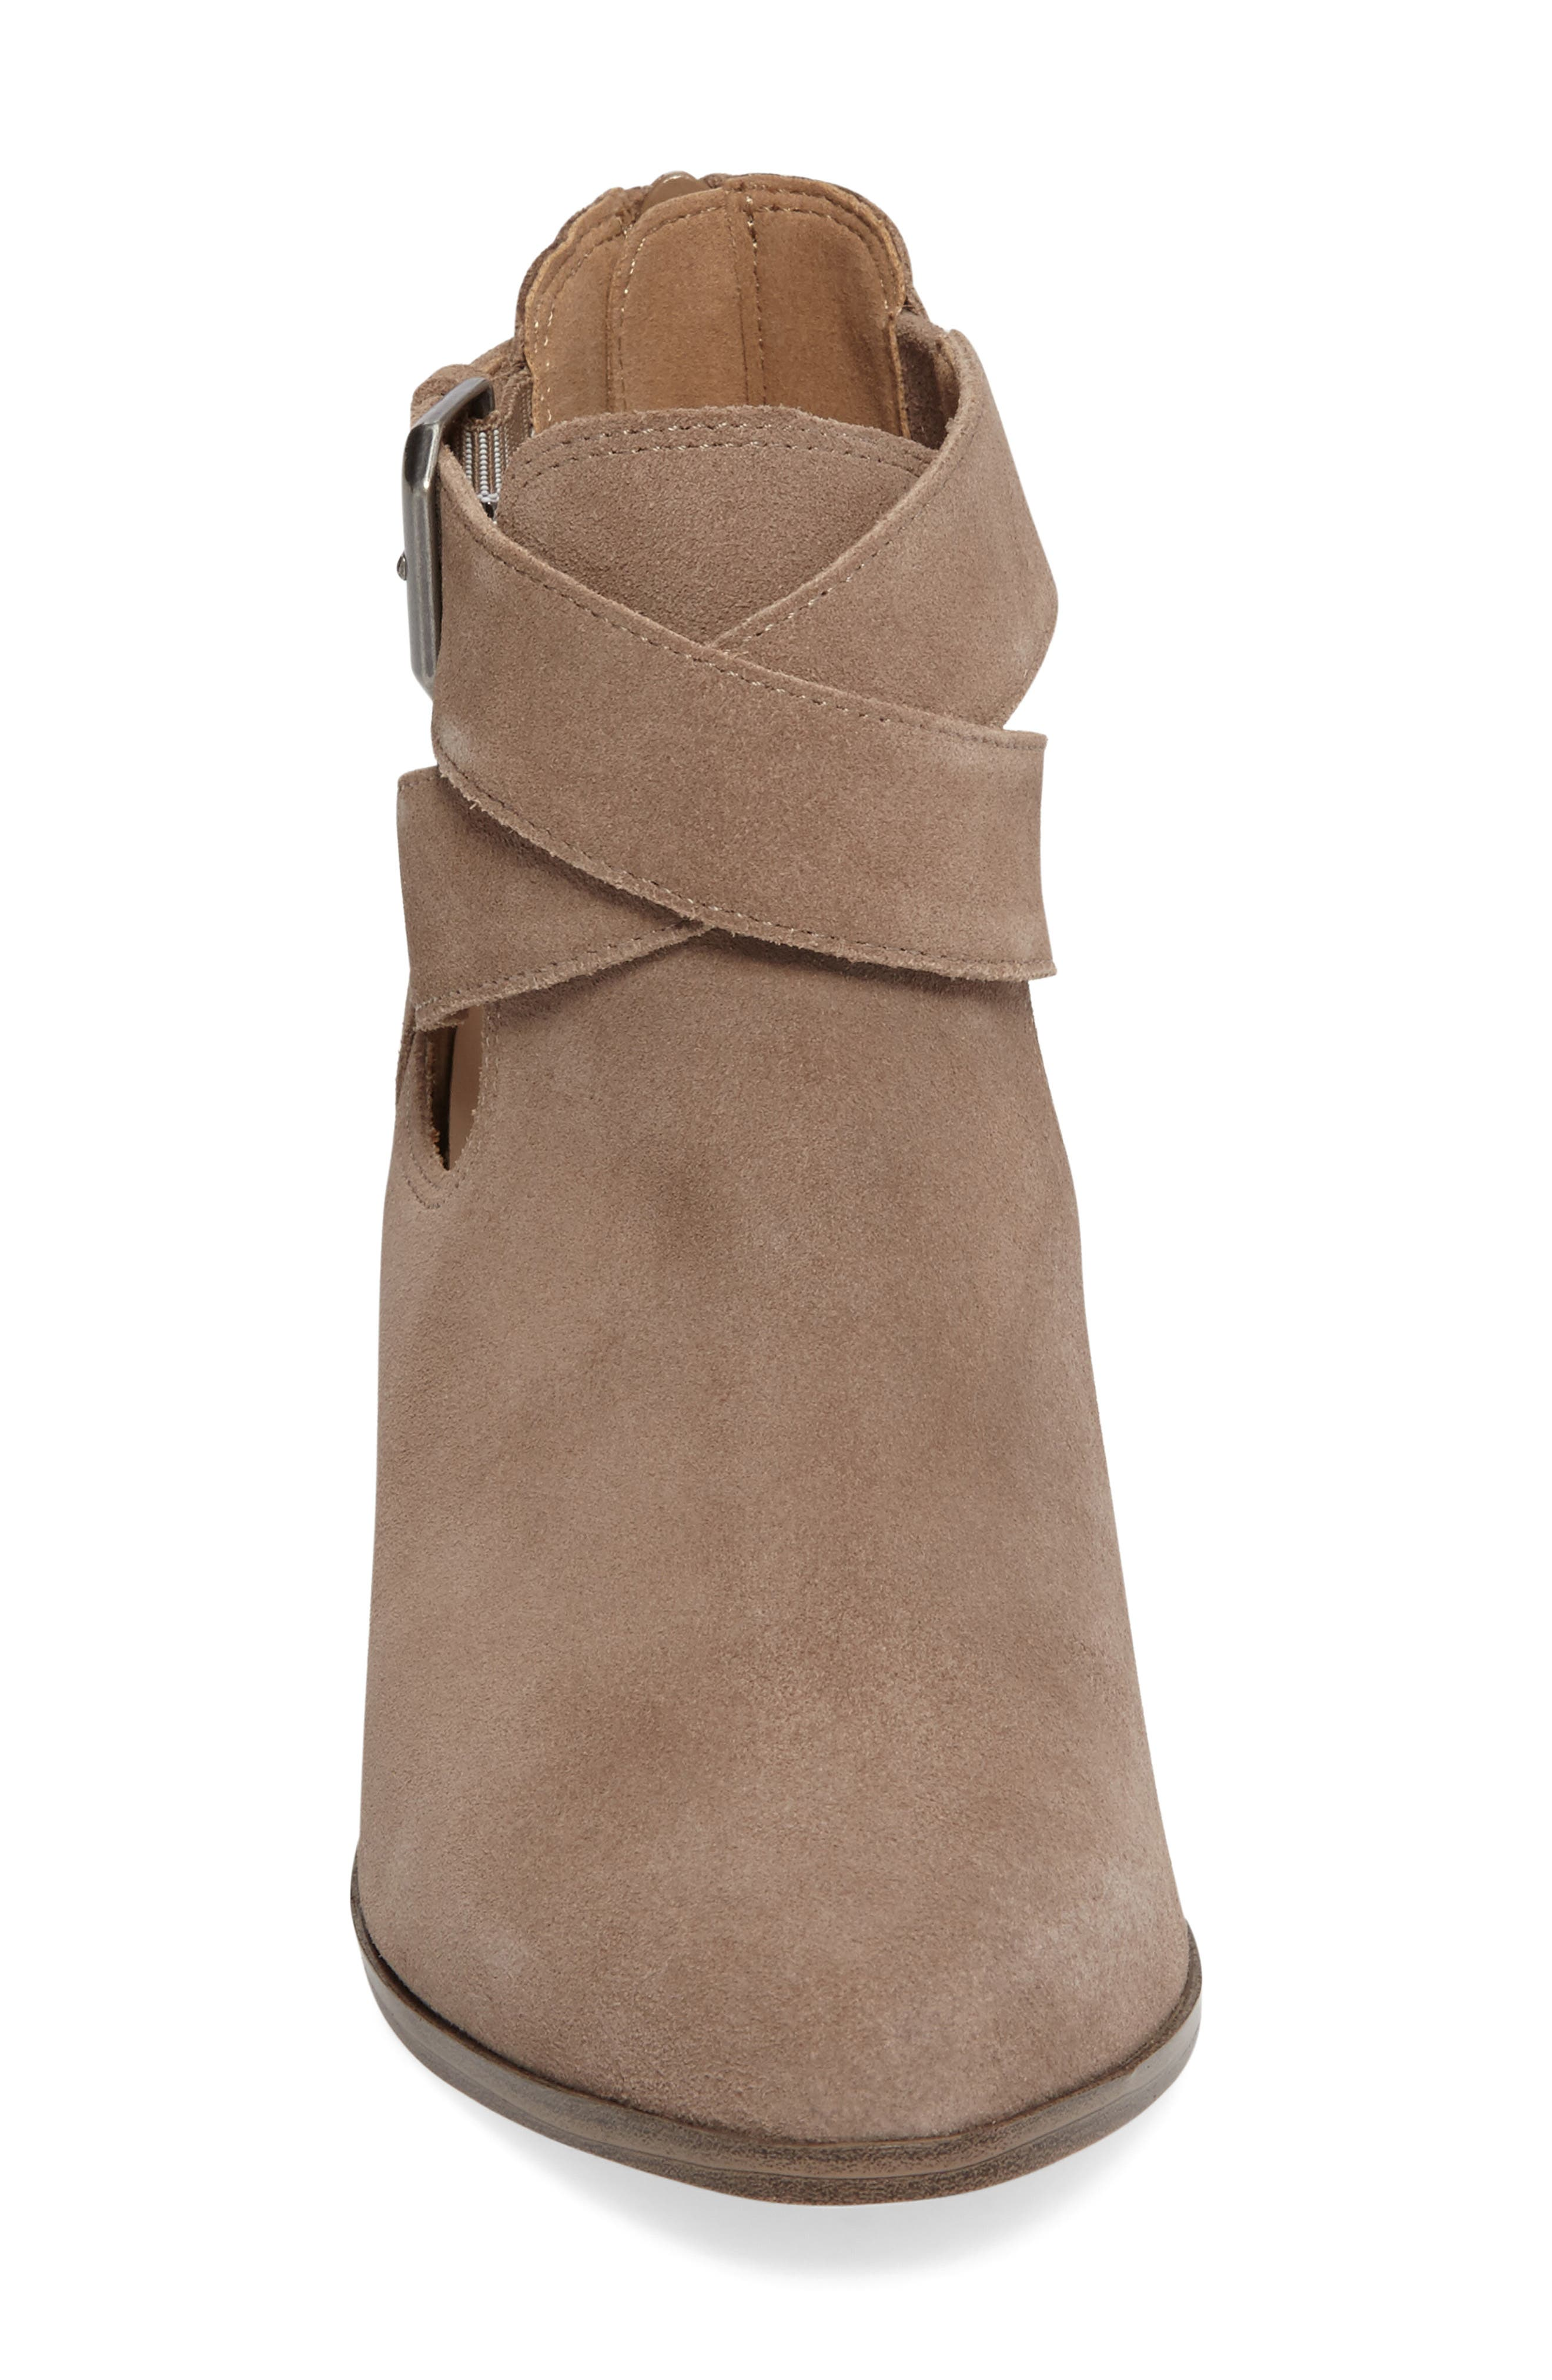 Azure Bootie,                             Alternate thumbnail 3, color,                             Taupe